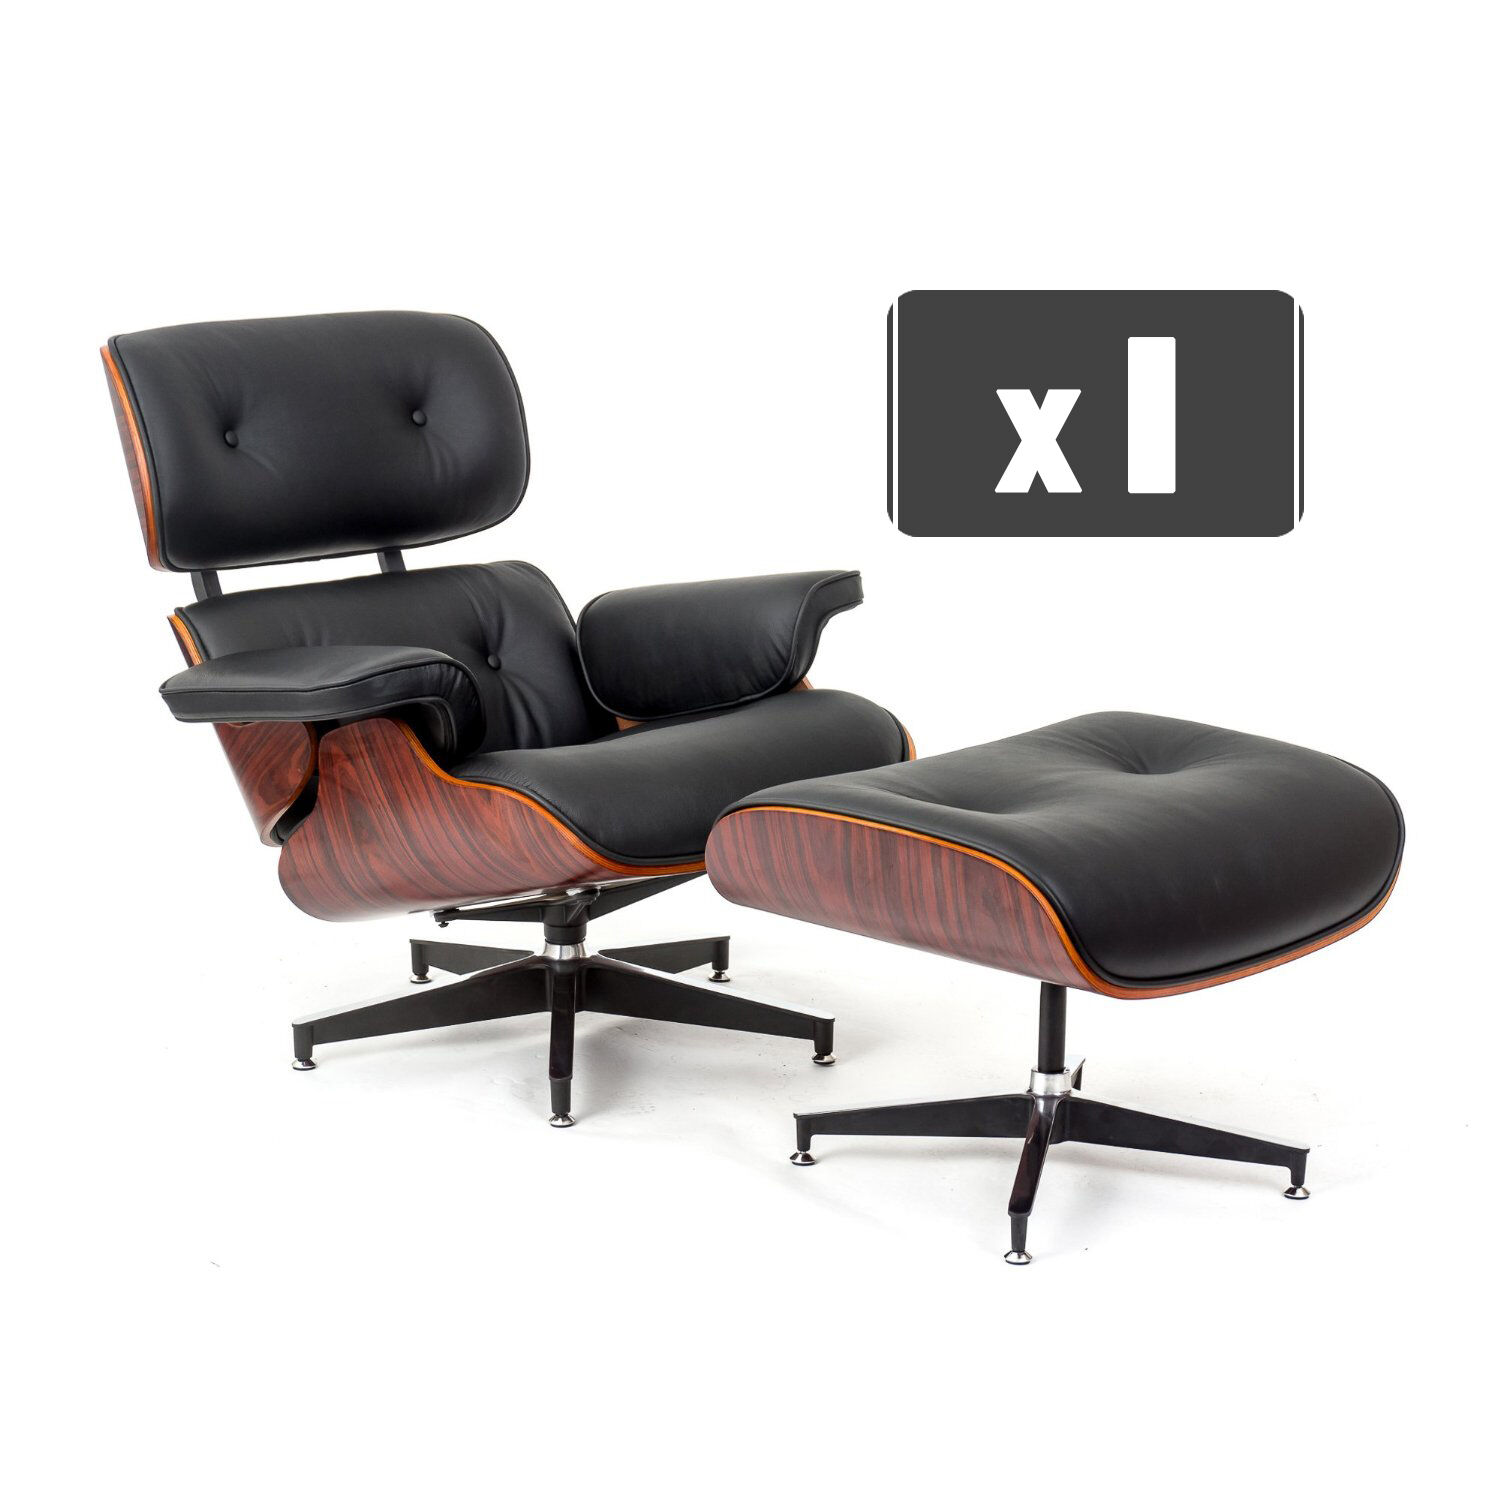 Replica charles eames lounge chair ottoman in black for Eames burostuhl replica